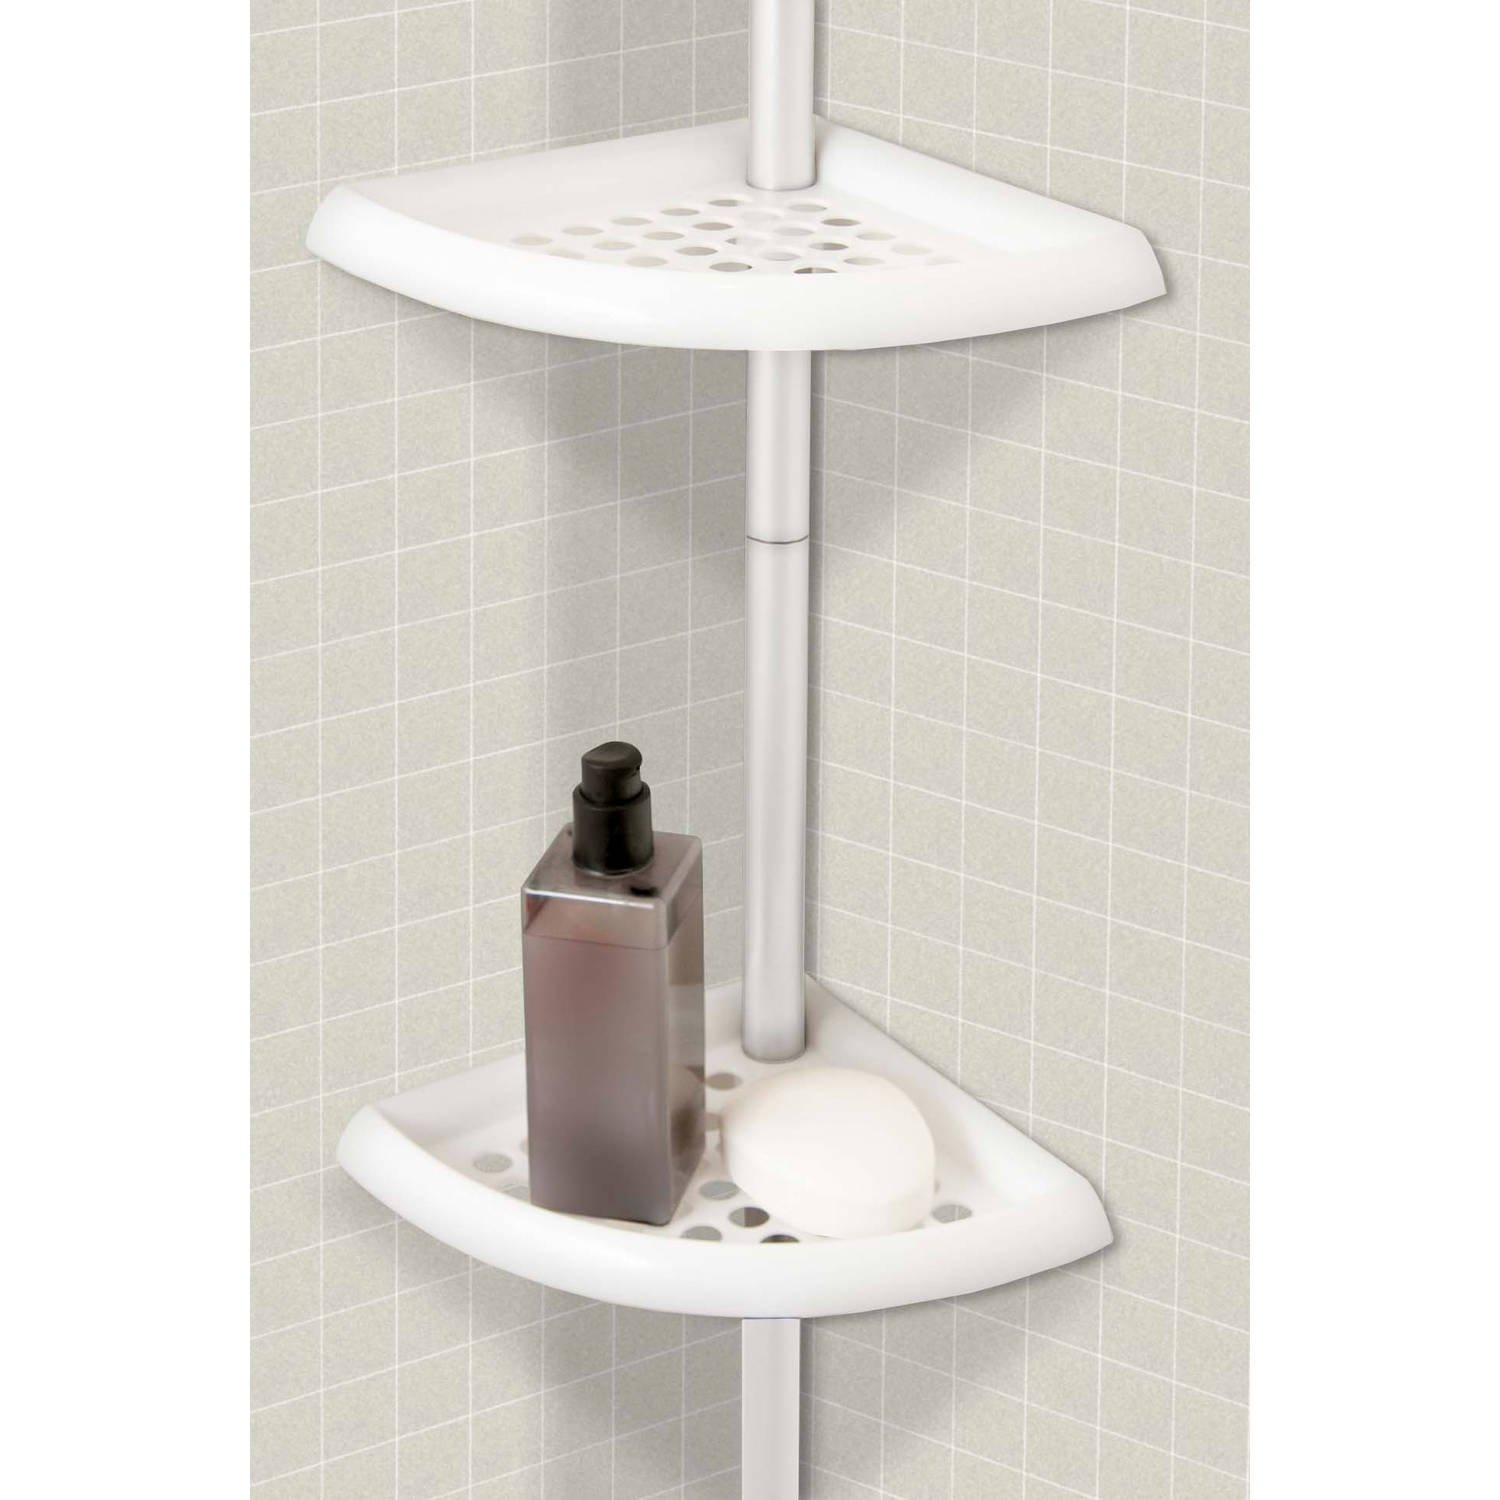 Taymor 02-D1081CWH Bathroom Furniture Sets, White